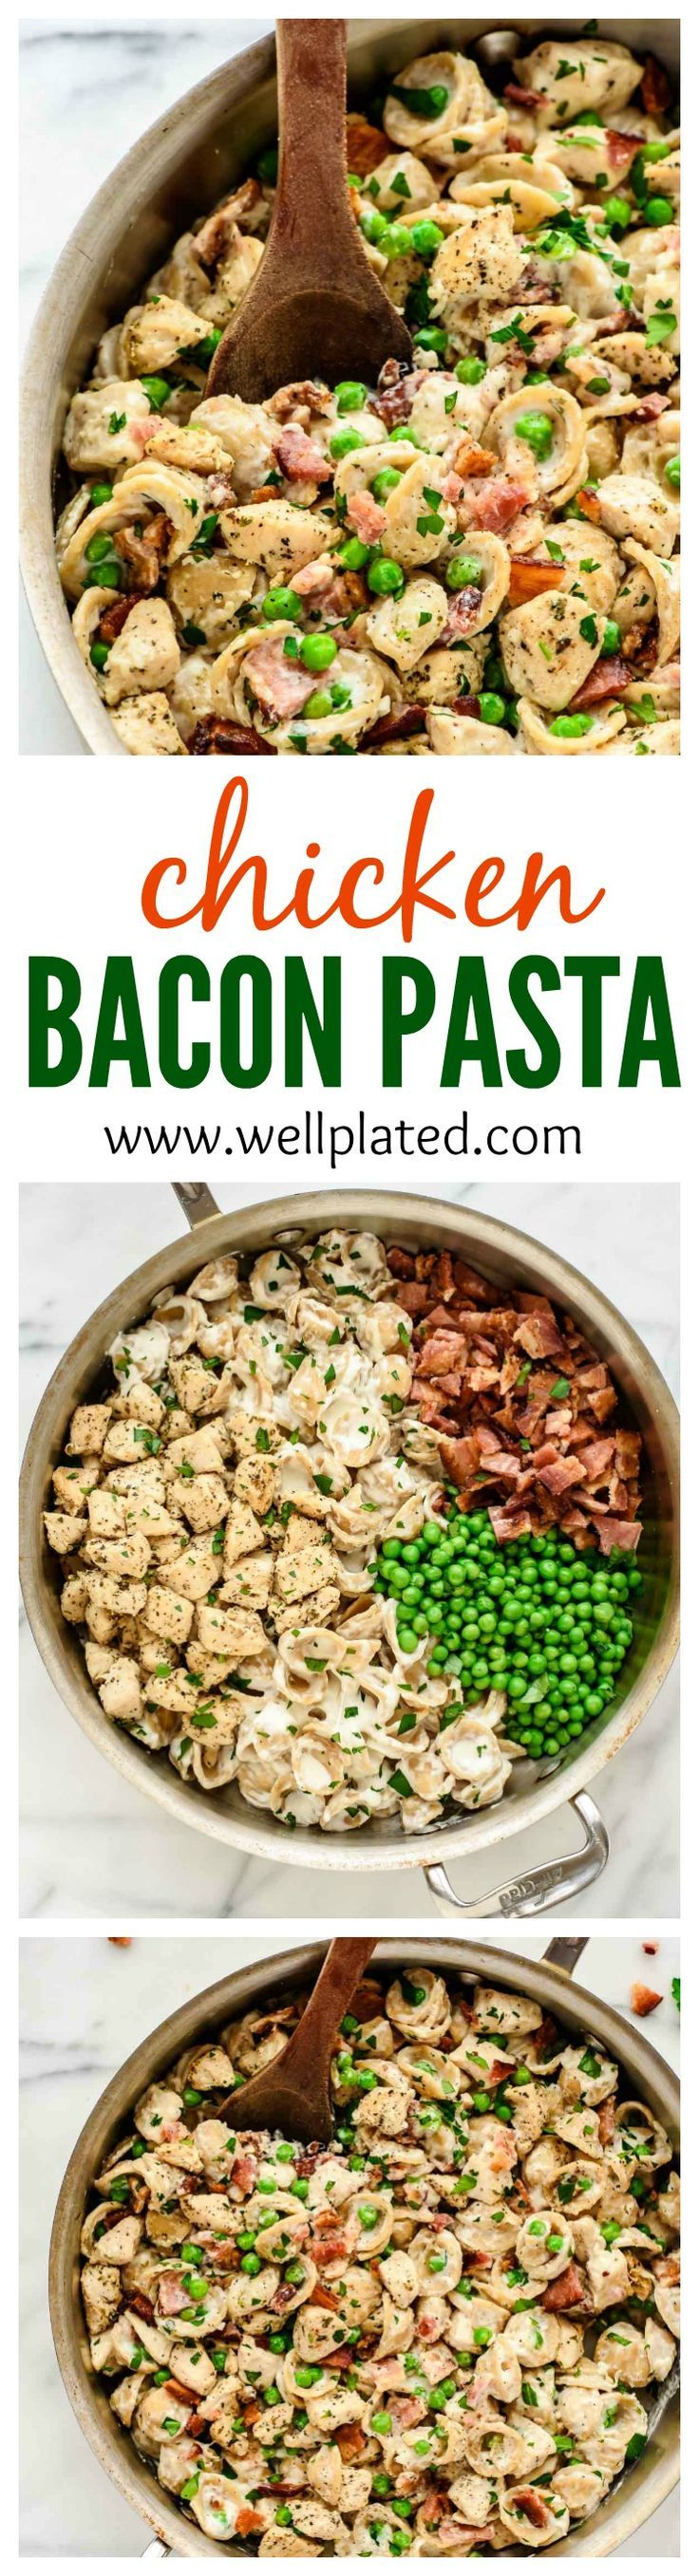 Chicken Bacon Pasta with Peas. Creamy, cheesy, and comforting! Loaded with Italian chicken, bacon, and homemade alfredo sauce. Ready in only 30 minutes and totally irresistible! | www.wellplated.com @wellplated